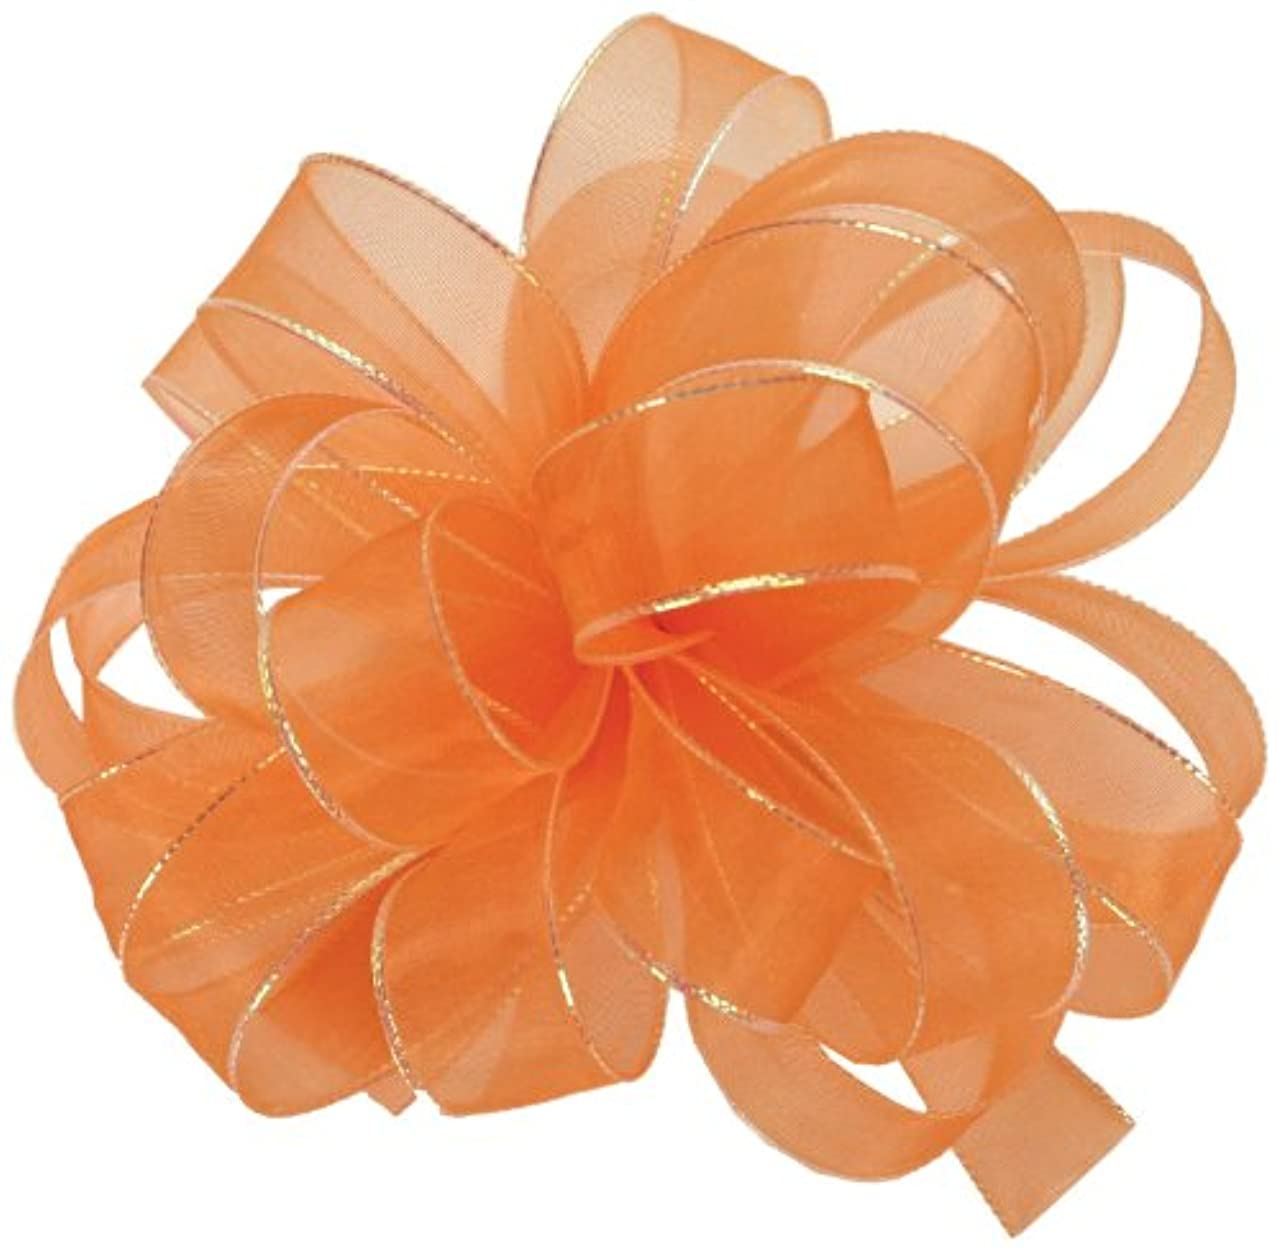 Offray Chic Sheer Craft Ribbon, 5/8-Inch by 25-Yard Spool, Orange with Opal Edge